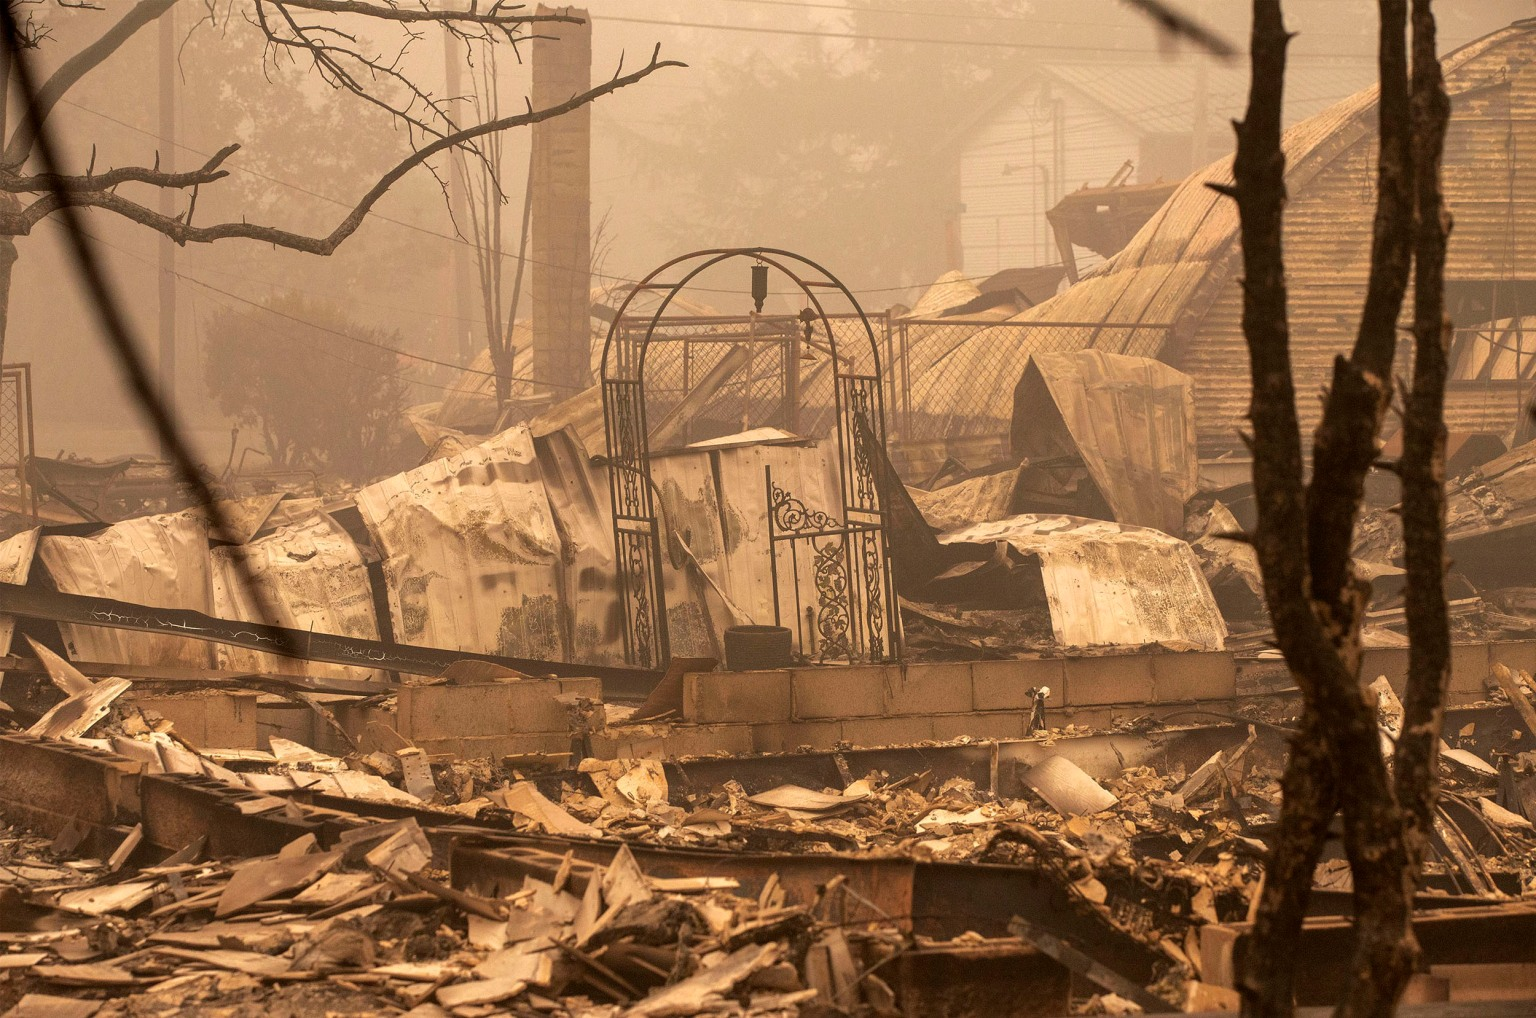 Wildfire evacuee returns home to find barn destroyed but animals alive